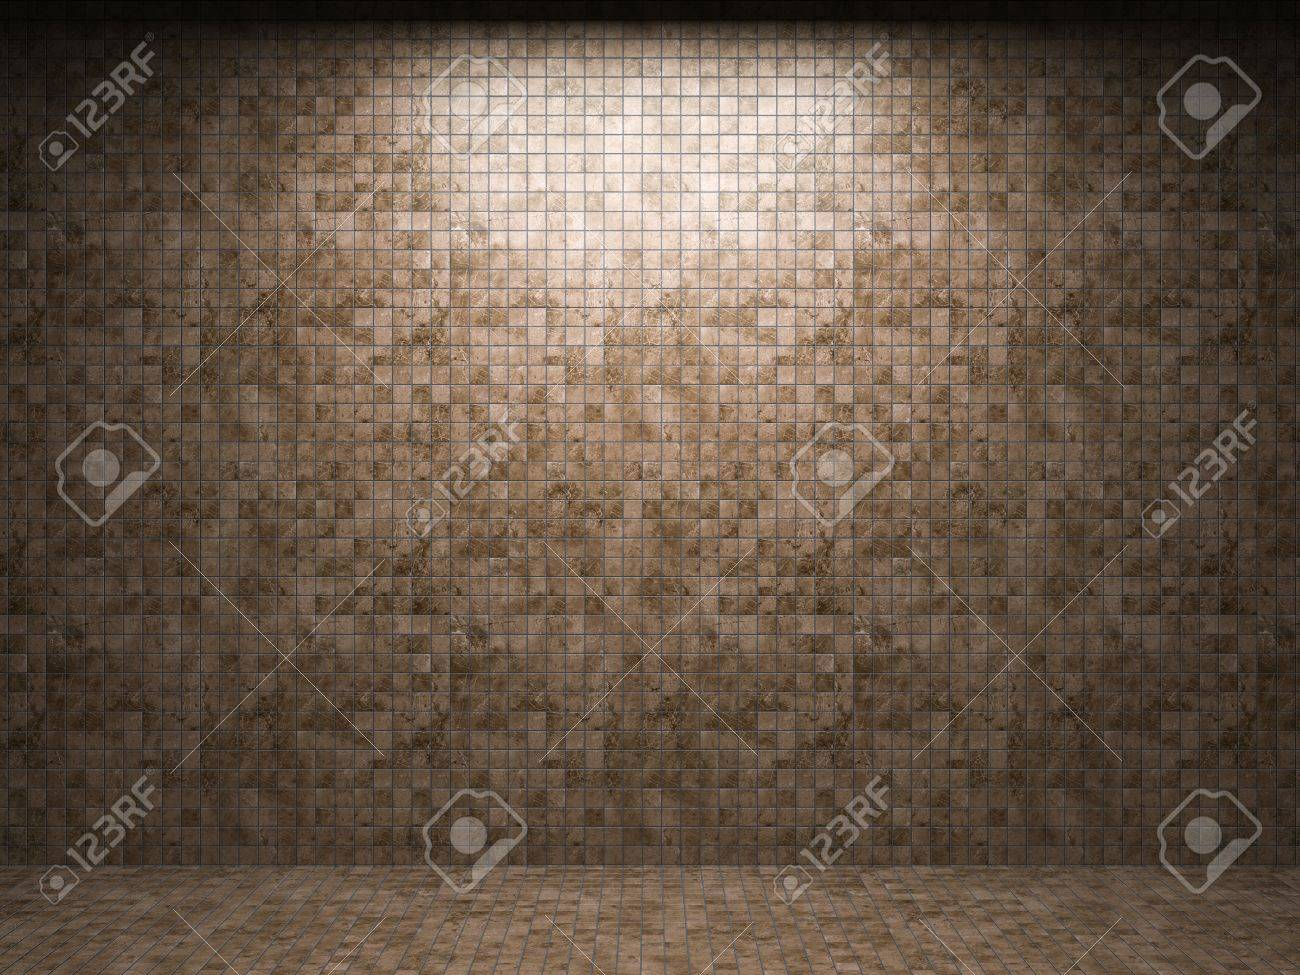 illuminated tile wall made in 3D graphics Stock Photo - 9366774